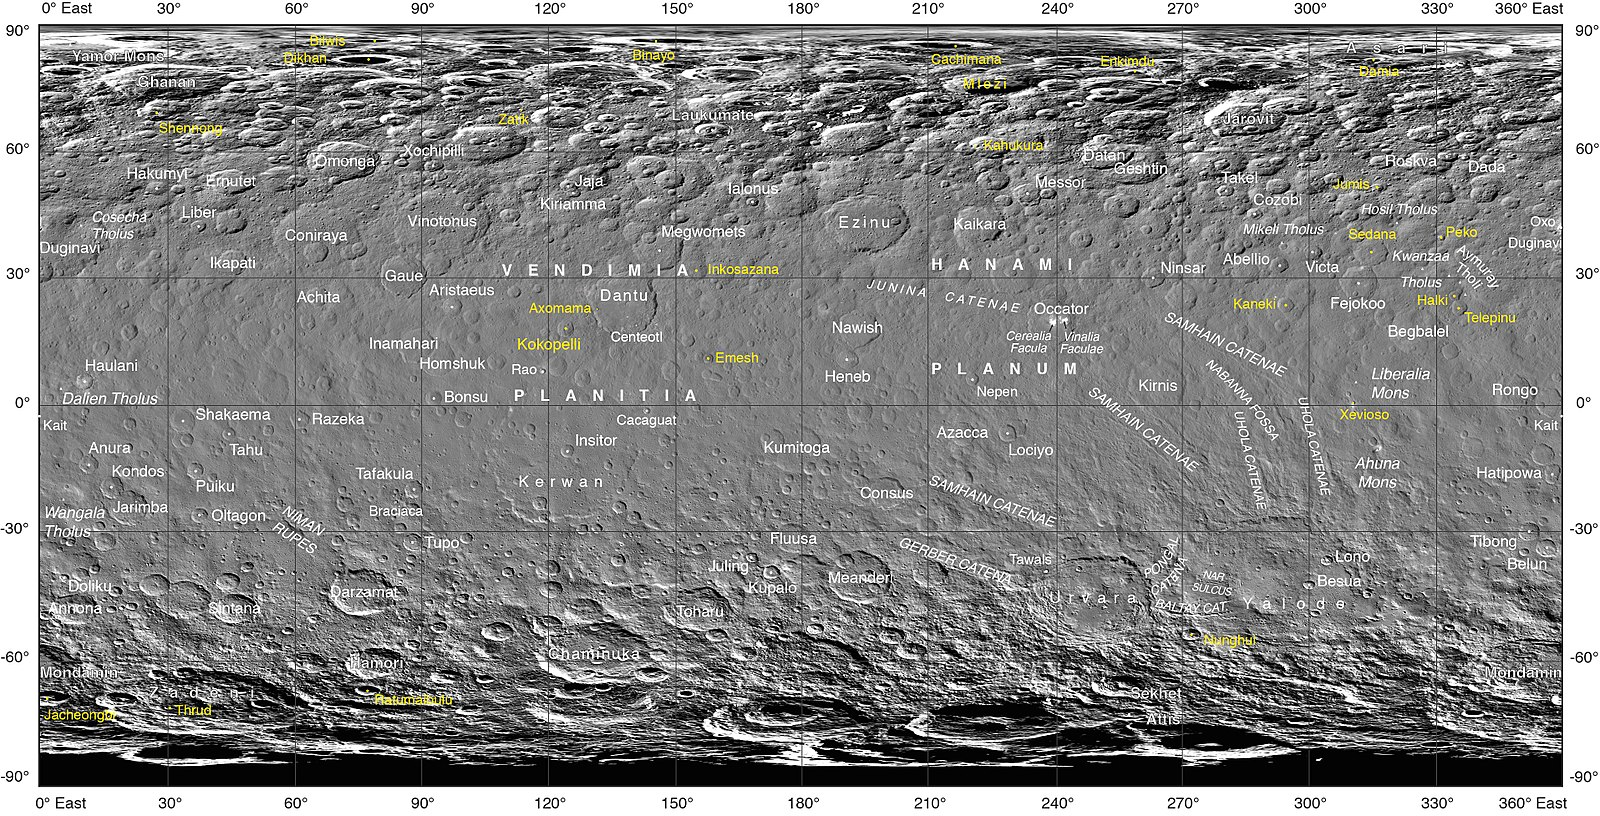 Ceres Dwarf Planet Wikiwand 451plutosolarsystemdiagramjpg Black And White Photographic Map Of Centered On 180 Longitude With Official Nomenclature September 2017